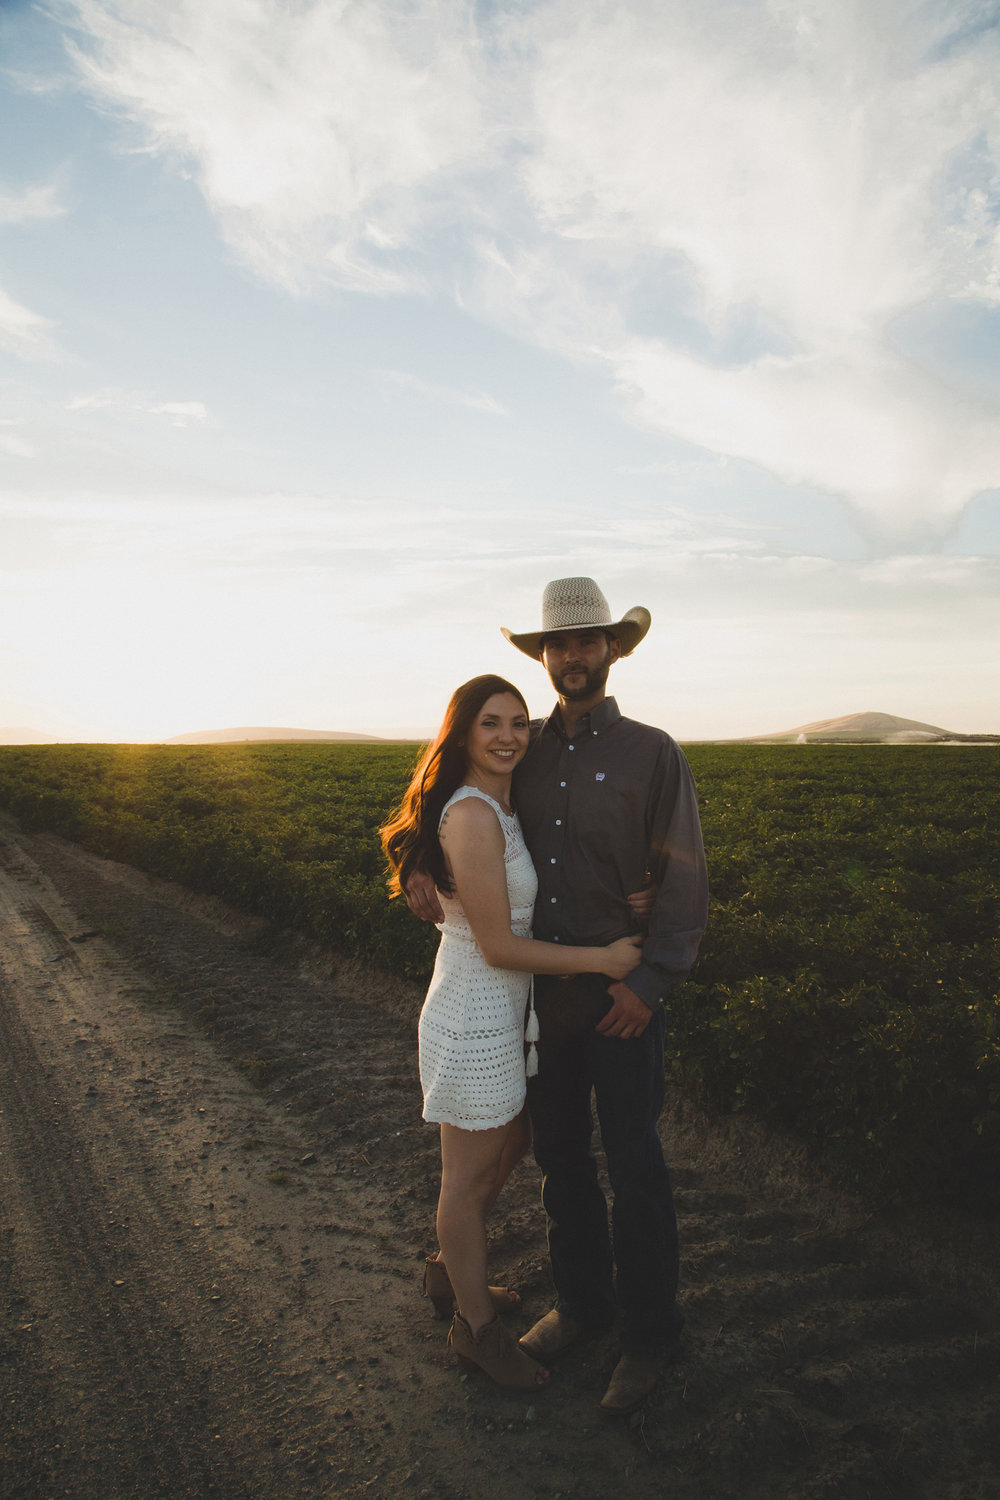 Tri Cities sunset engagement session_desert engagement_Vineyard engagement_Jordyn and Drew_Jordan Edens Photography_JEP_potato field_desert_mountains_badger mountain_fields_6